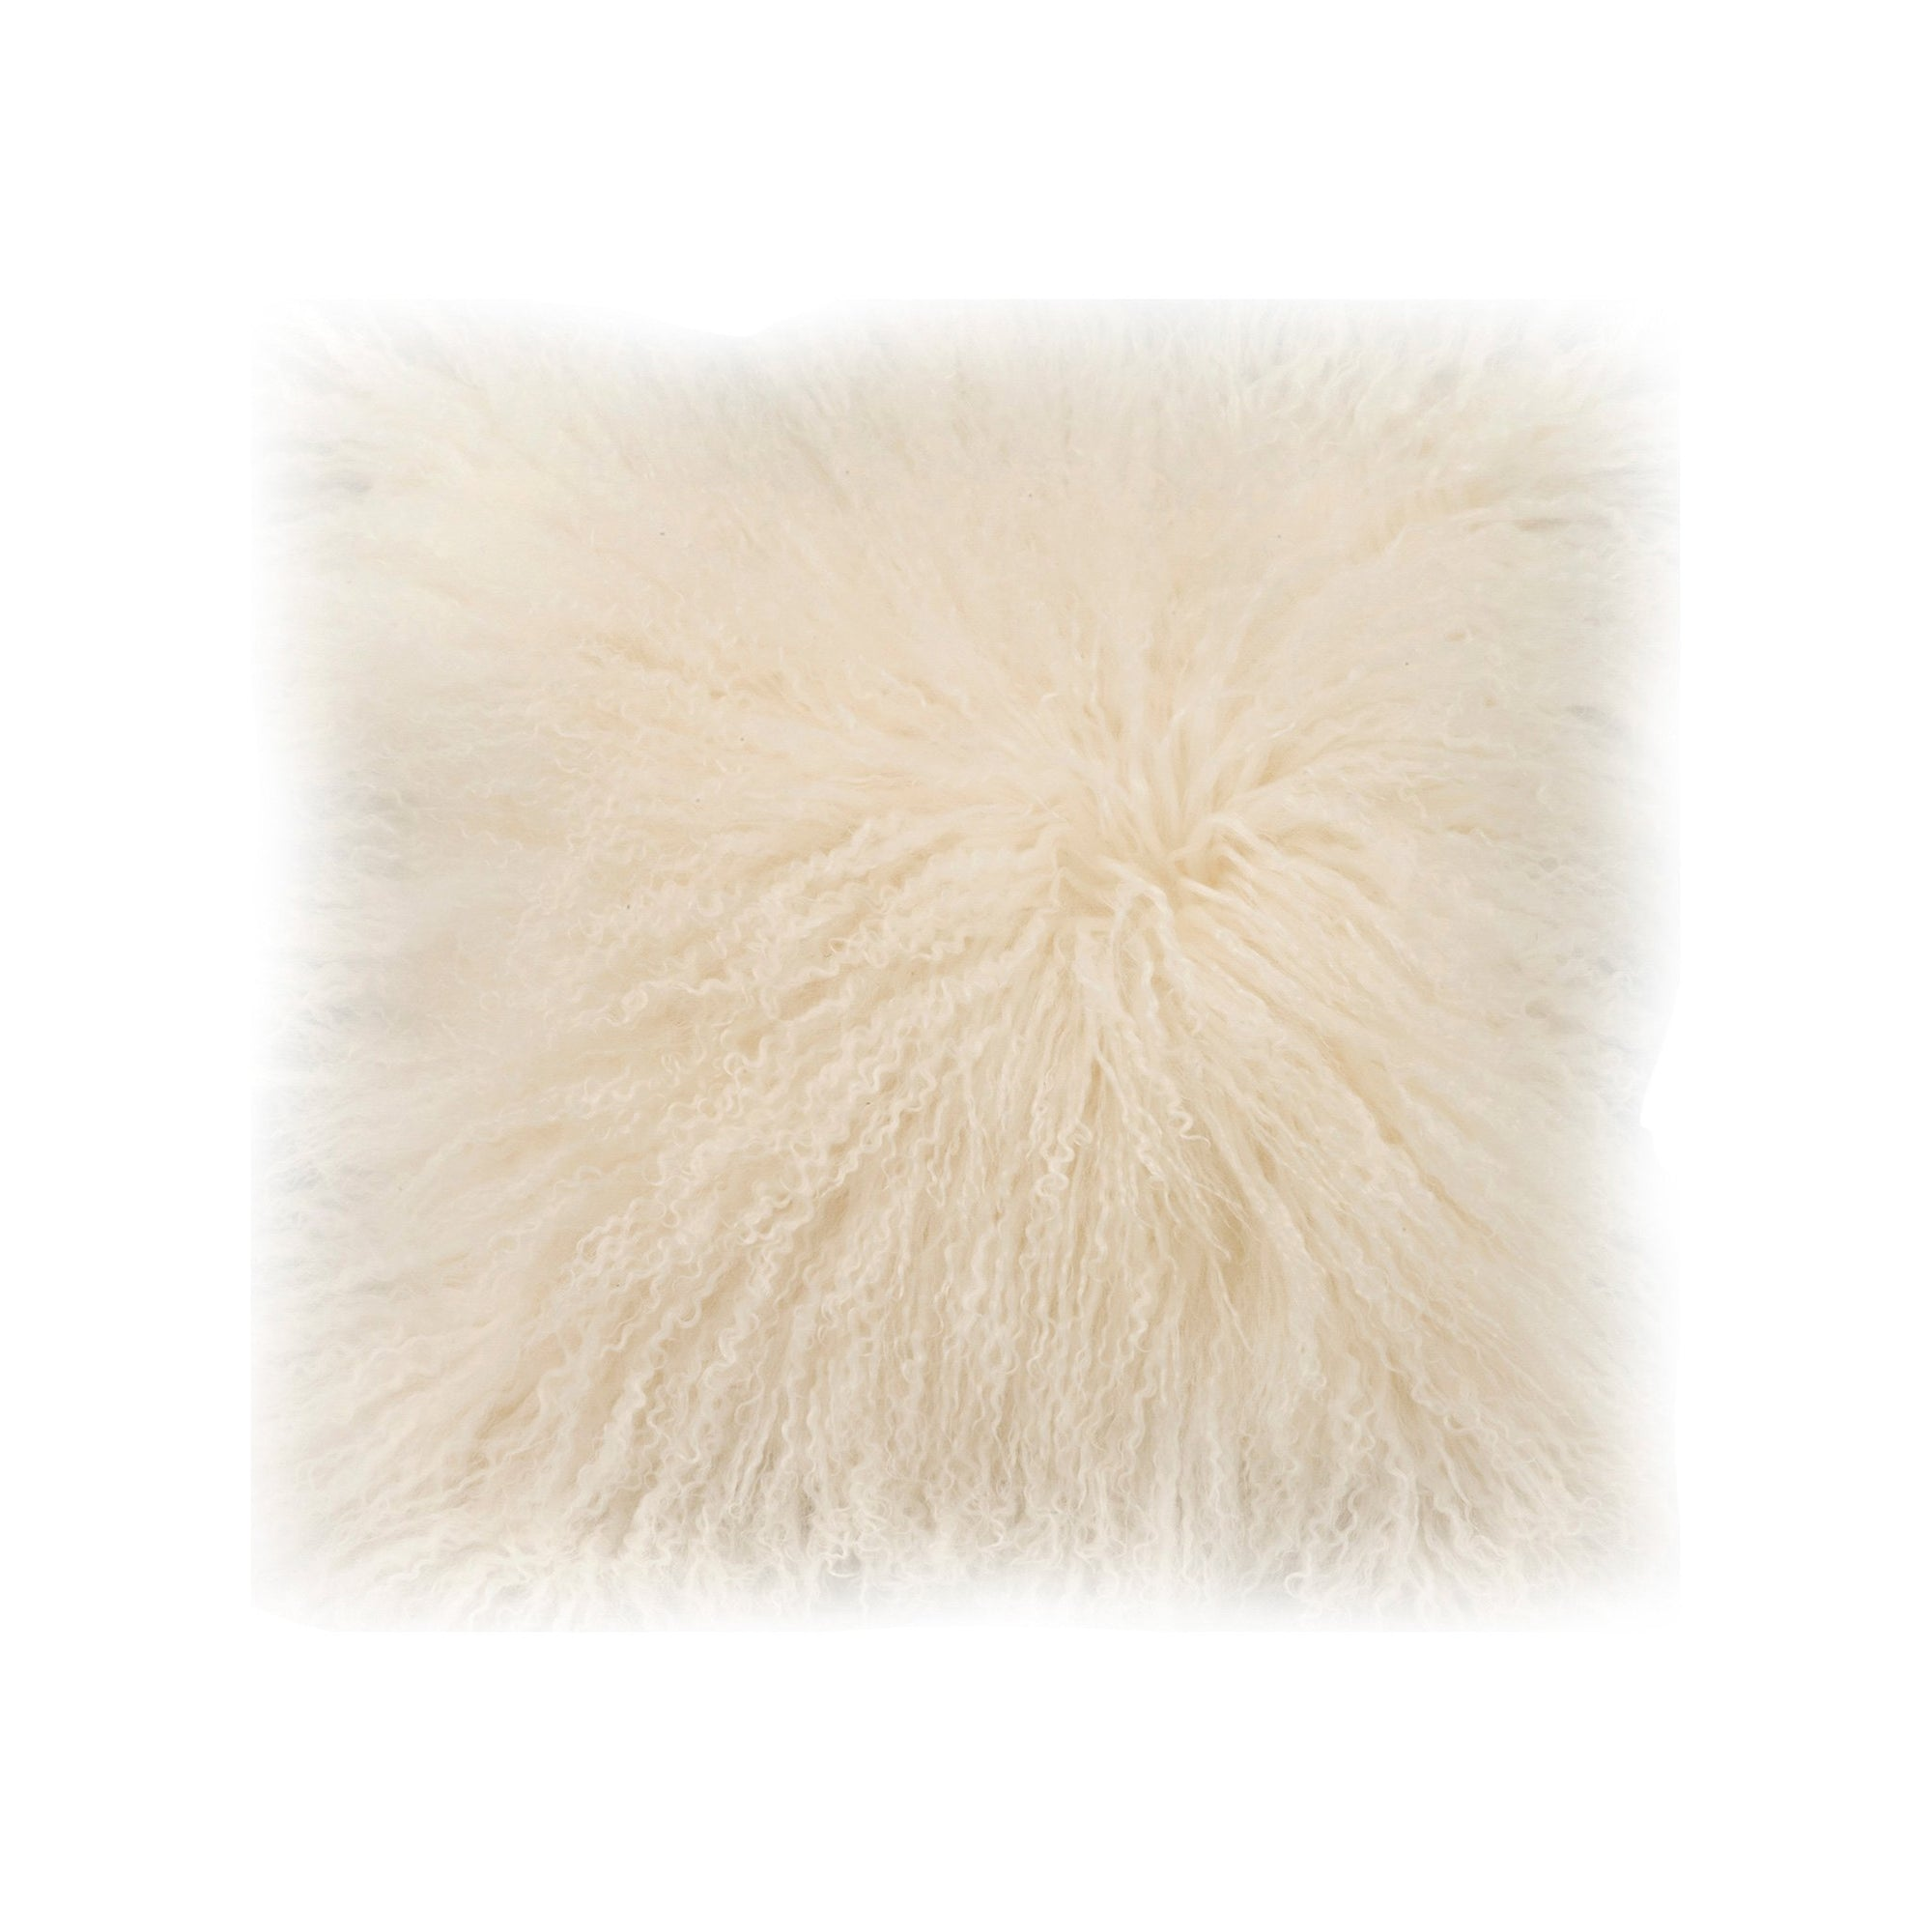 MOES-LAMB FUR PILLOW-Pillows-MODTEMPO